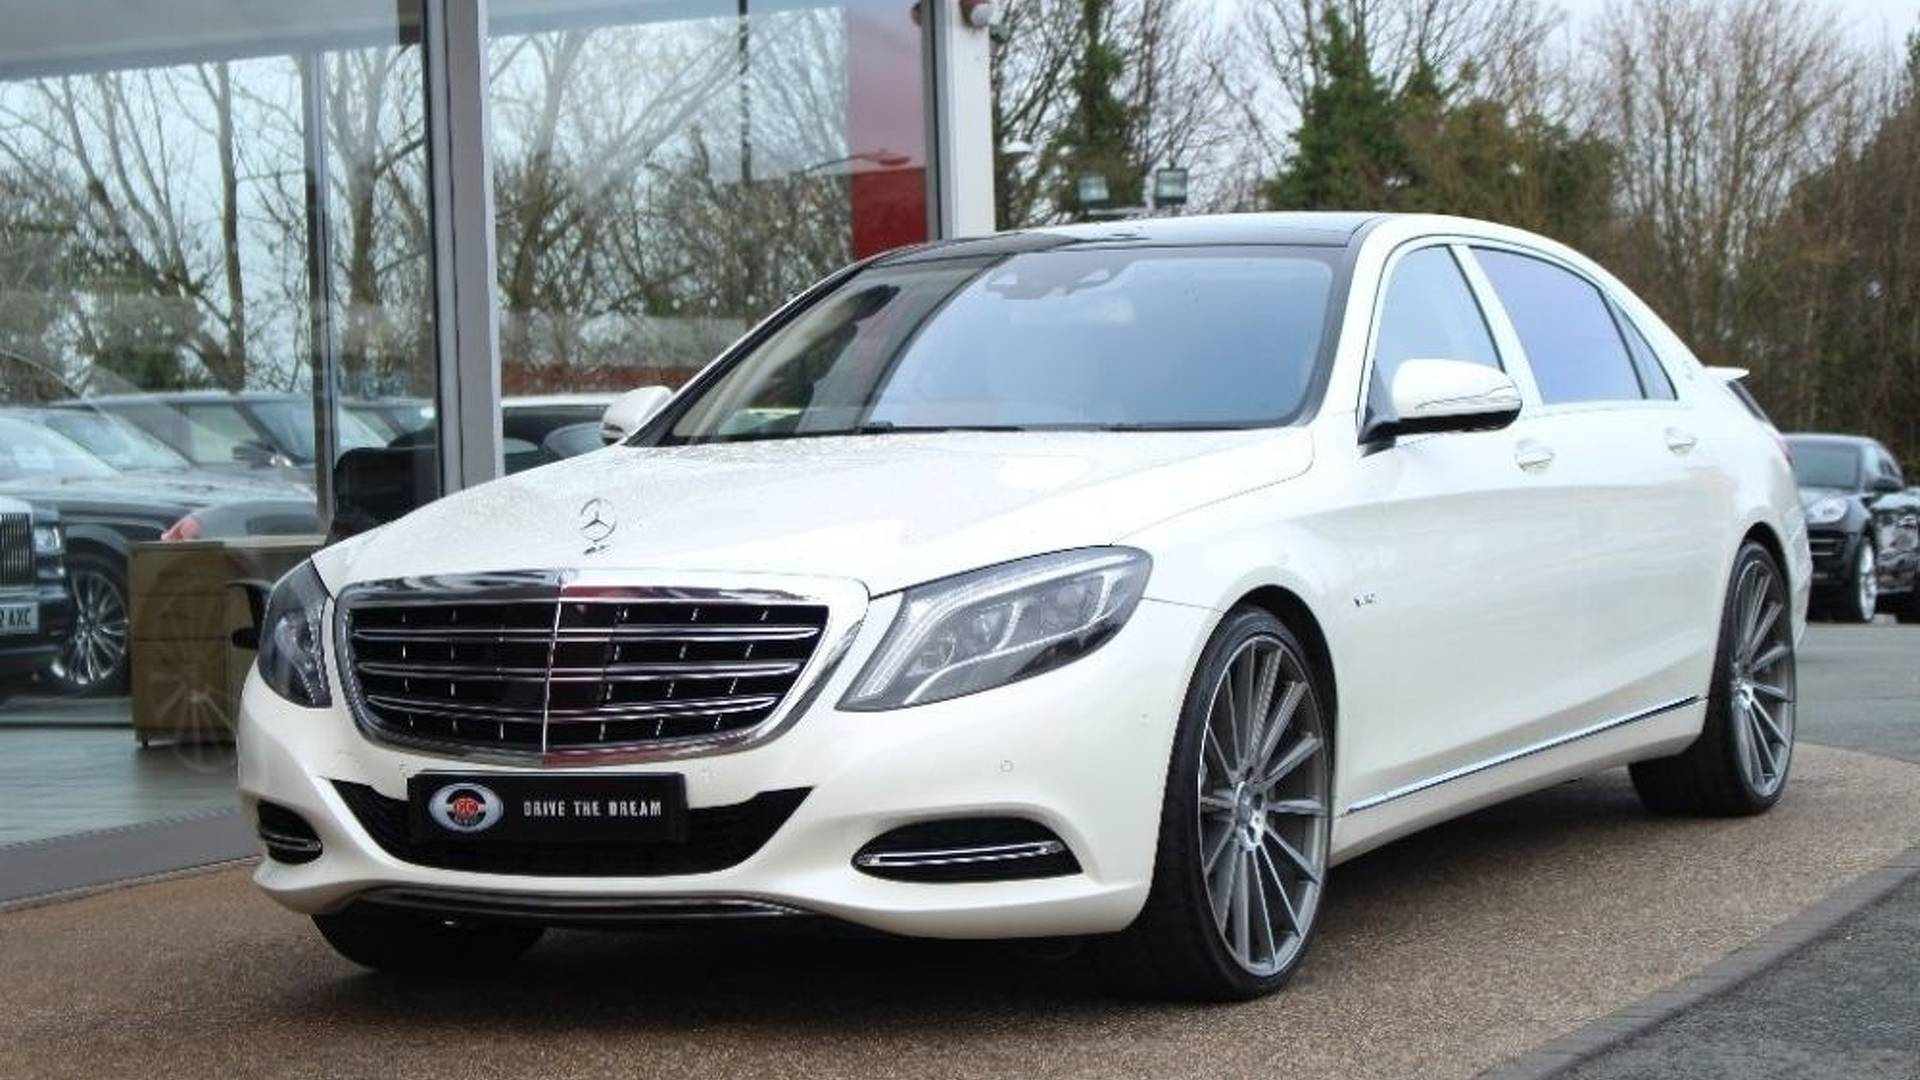 Lewis Hamilton s Mercedes Maybach S600 Is Up For Sale